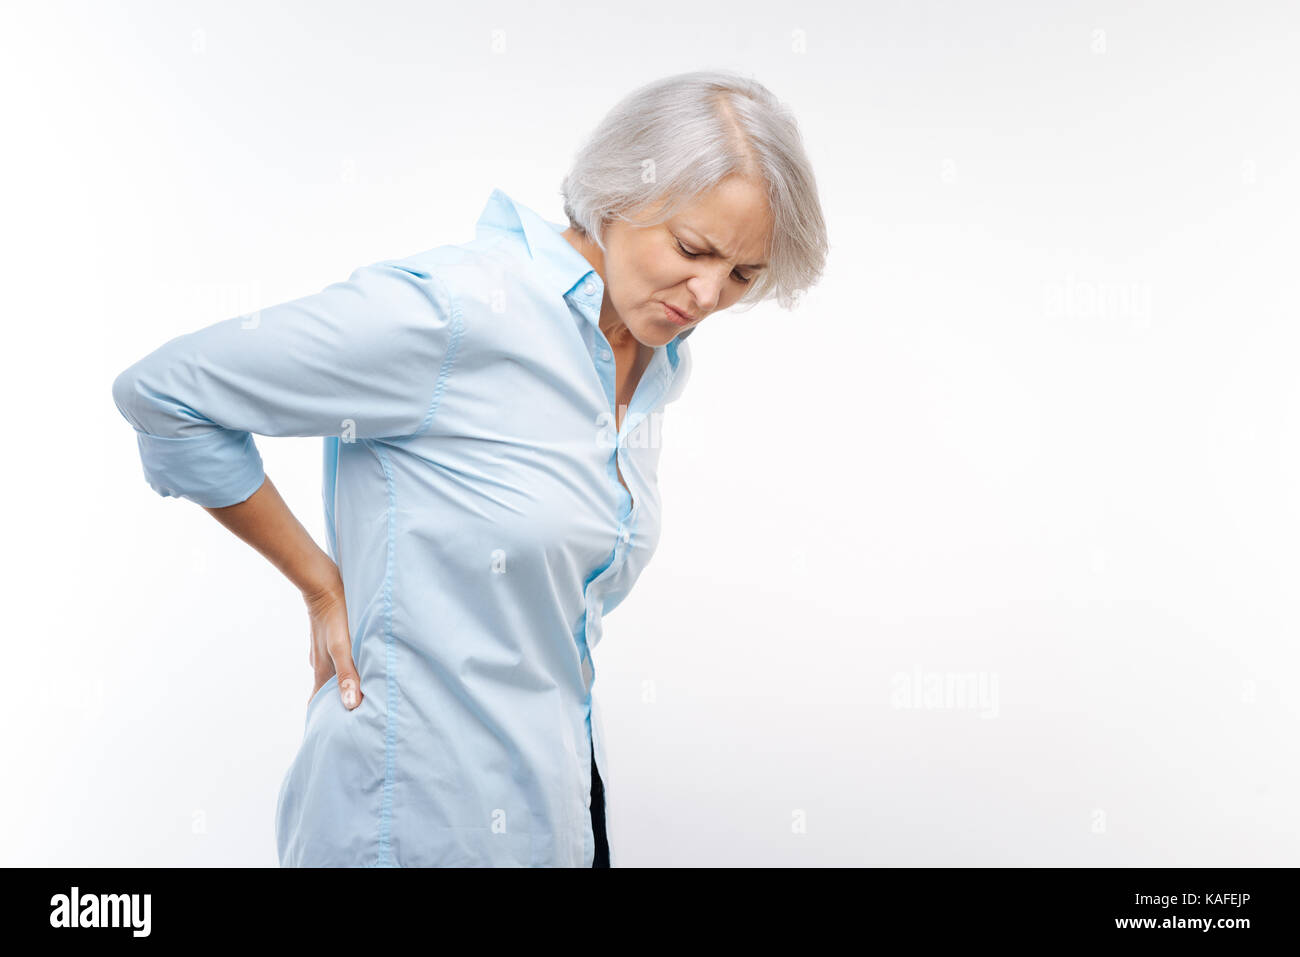 Grey-haired woman suffering from pain in lower back - Stock Image